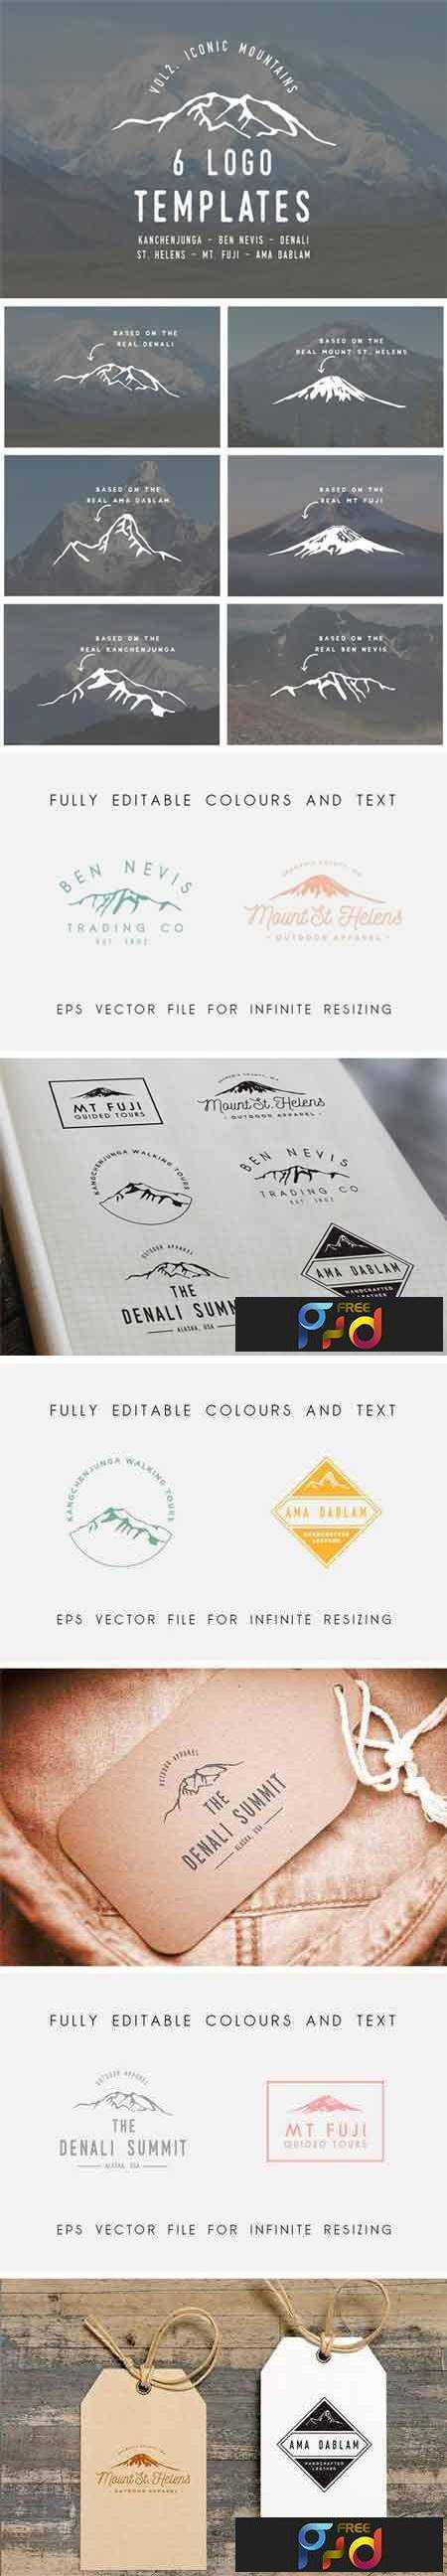 FreePsdVn.com_1705002_MOCKUP_iconic_mountain_logo_templates_vol2_1740691